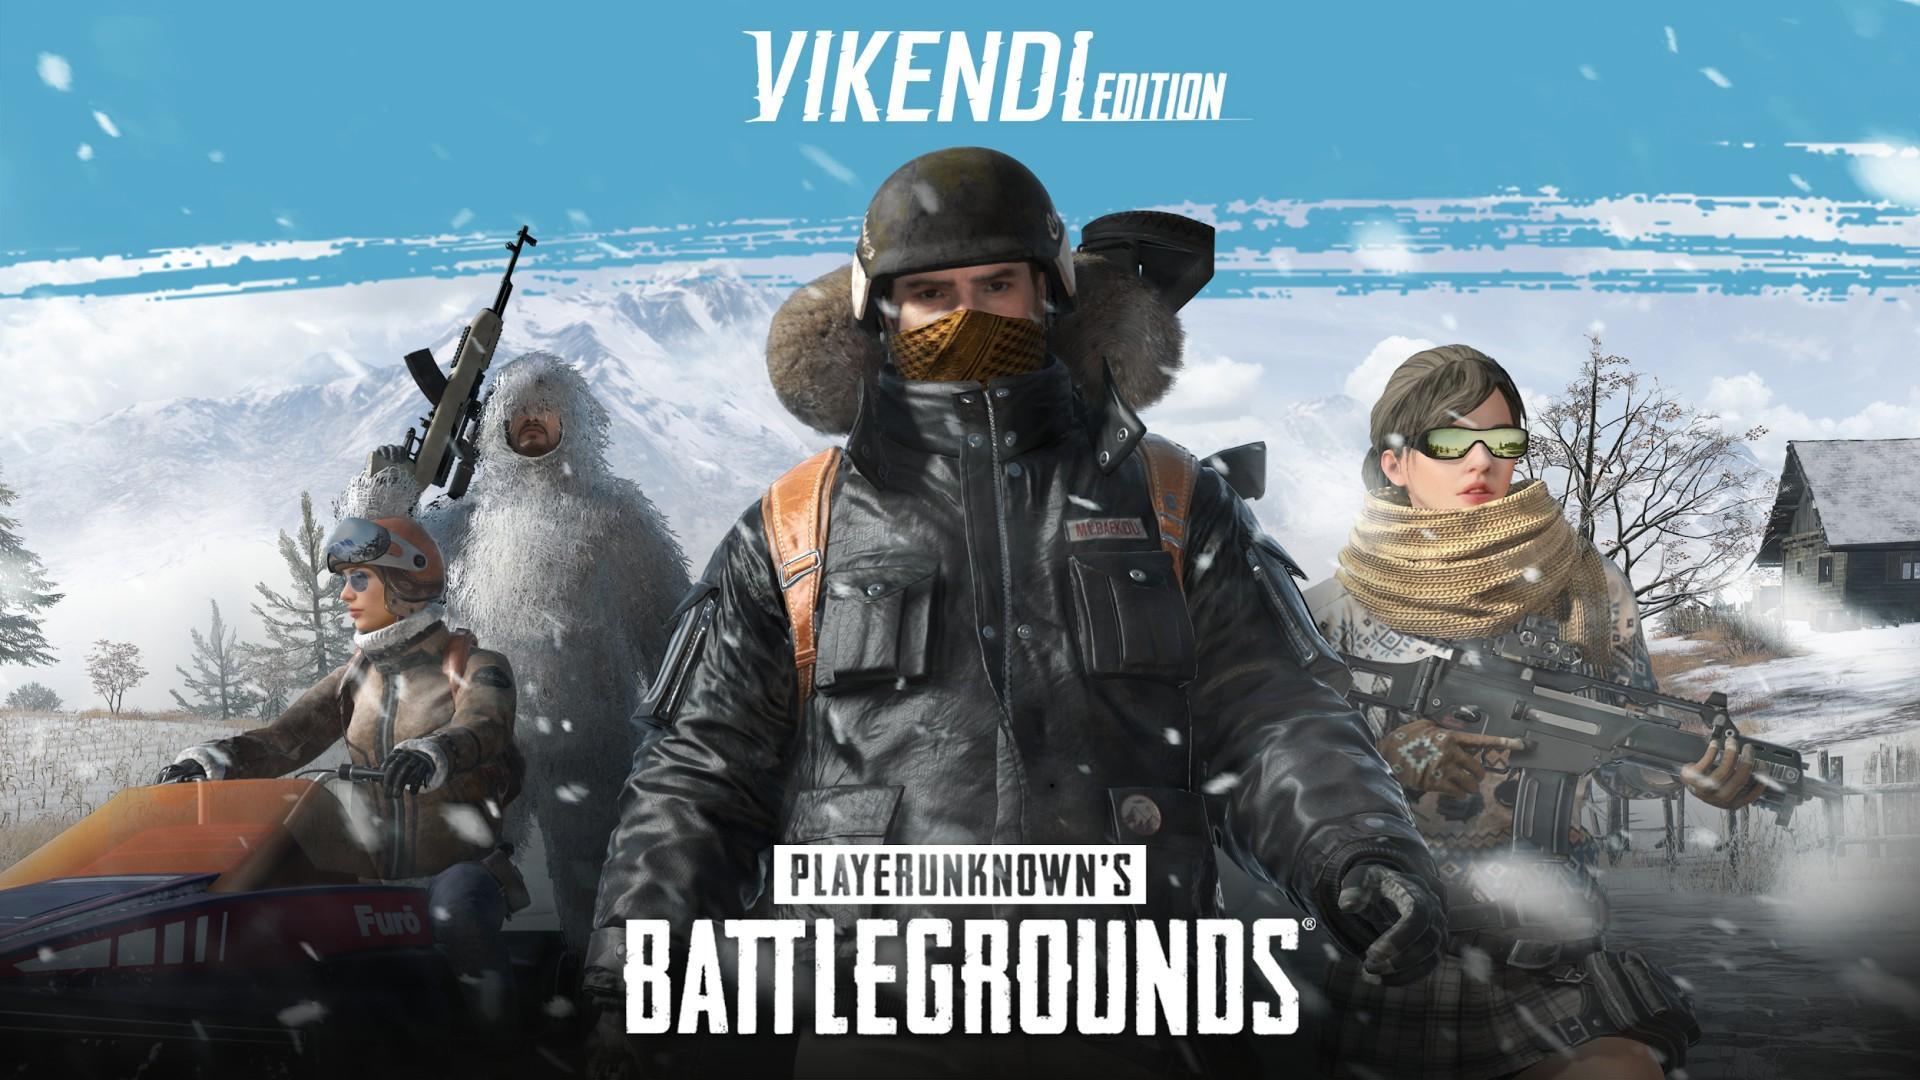 Pubg S Winter Themed Vikendi Map Is Live Right Now Playstation 4